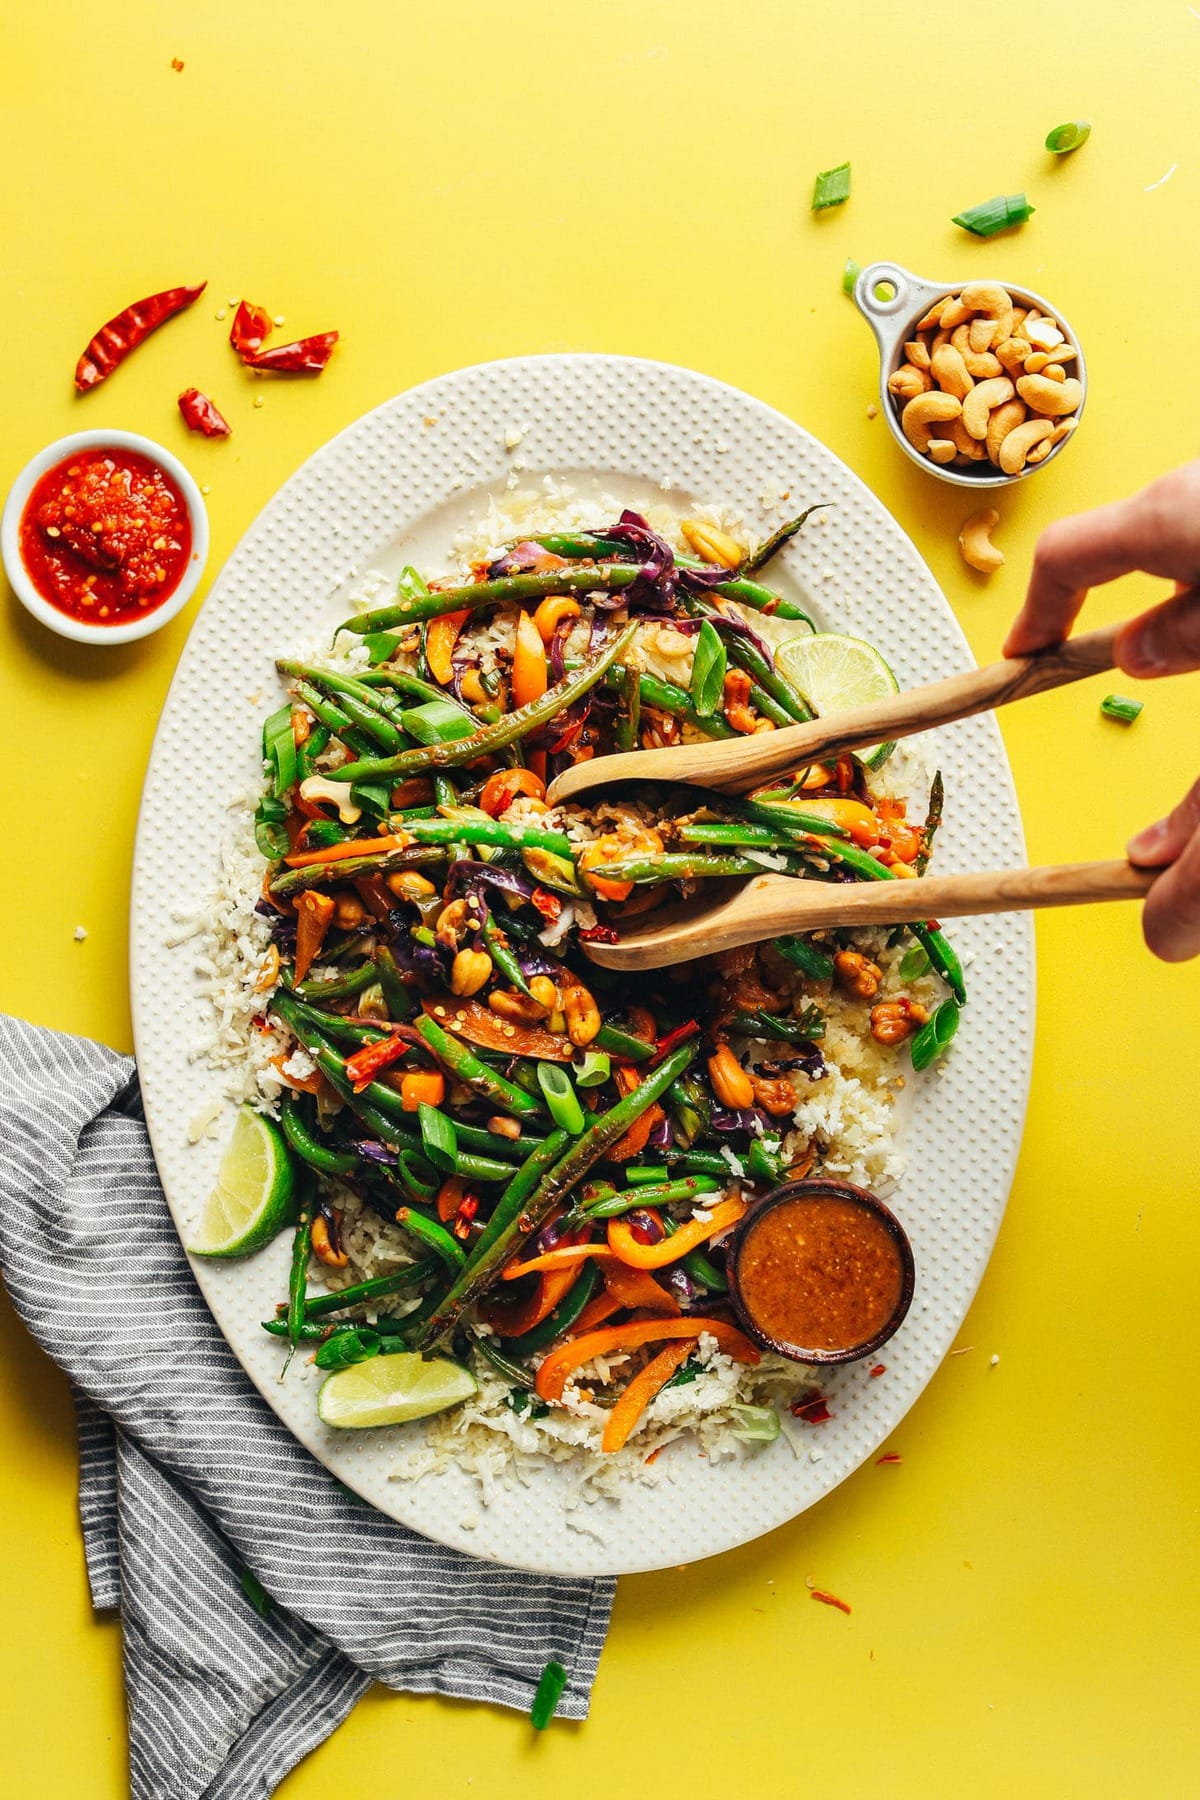 Easy, flavorful, satisfying cauliflower rice stir-fry ready in just 30 minutes! Vegetable-rich, studded with roasted cashews, grain-free!